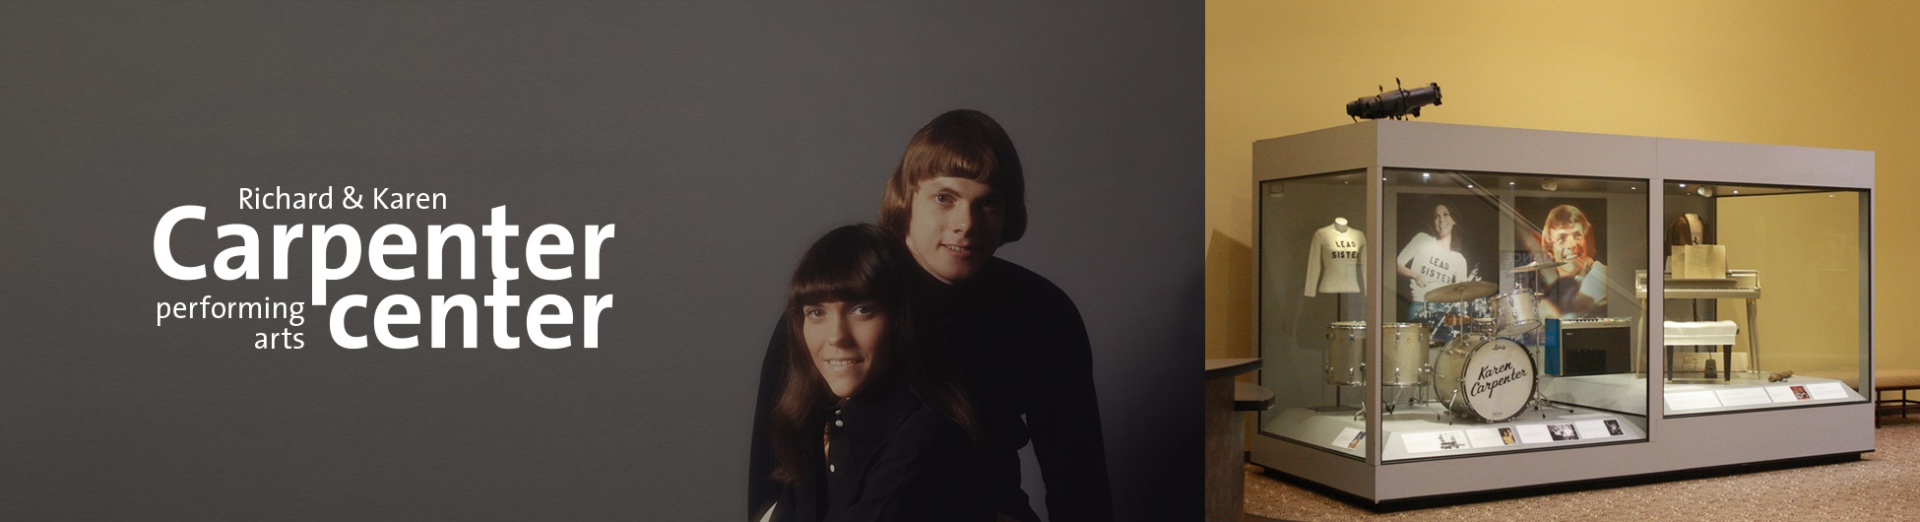 Carpenter Center logo, a photograph of Karen and Richard Carpenter, and a view of their instruments from the Carpenter Exhibit inside the Carpenter Center lobby.